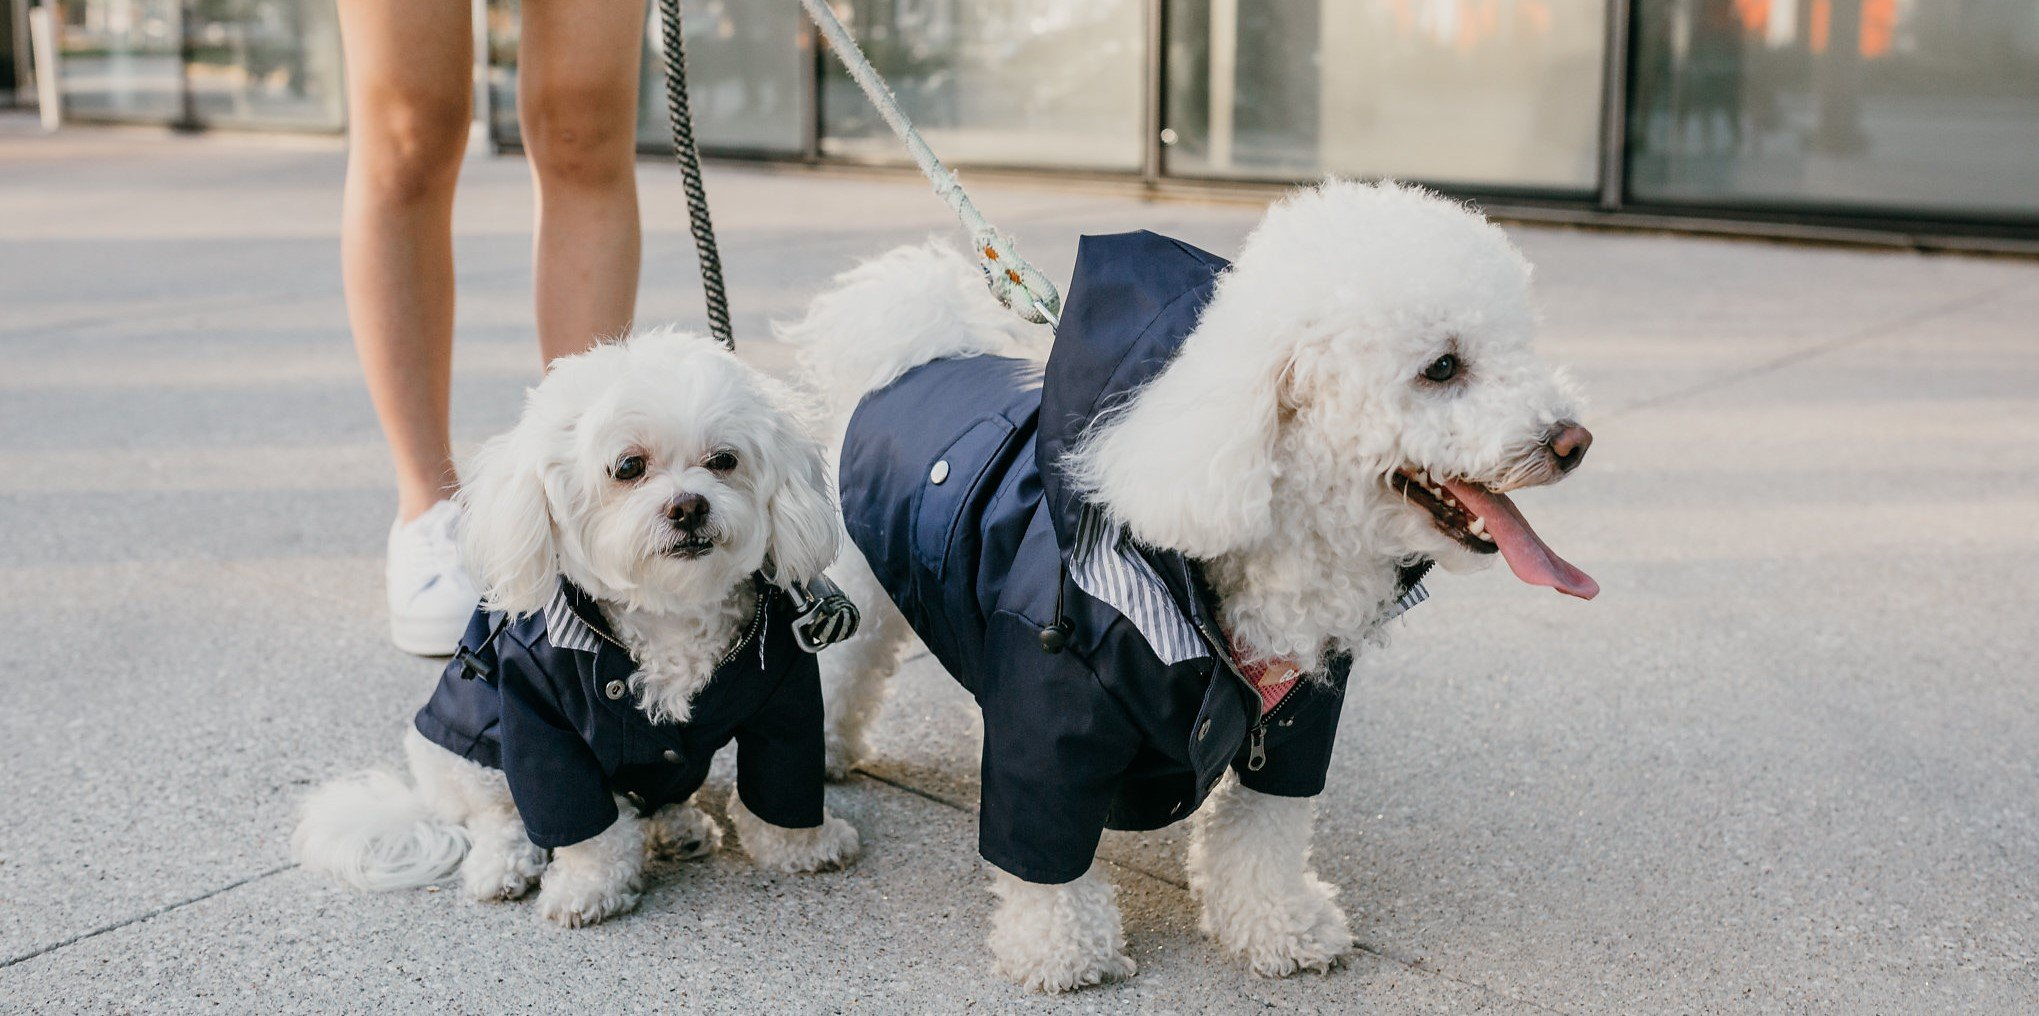 Navy Blue Zip Up Dog Raincoat with Reflective Buttons, Pockets, Rain/Water Resistant, Adjustable Drawstring, Removable Hood - Size XS to XXL Available - Stylish Premium Dog Raincoats by Ellie (S) by Ellie Dog Wear (Image #6)